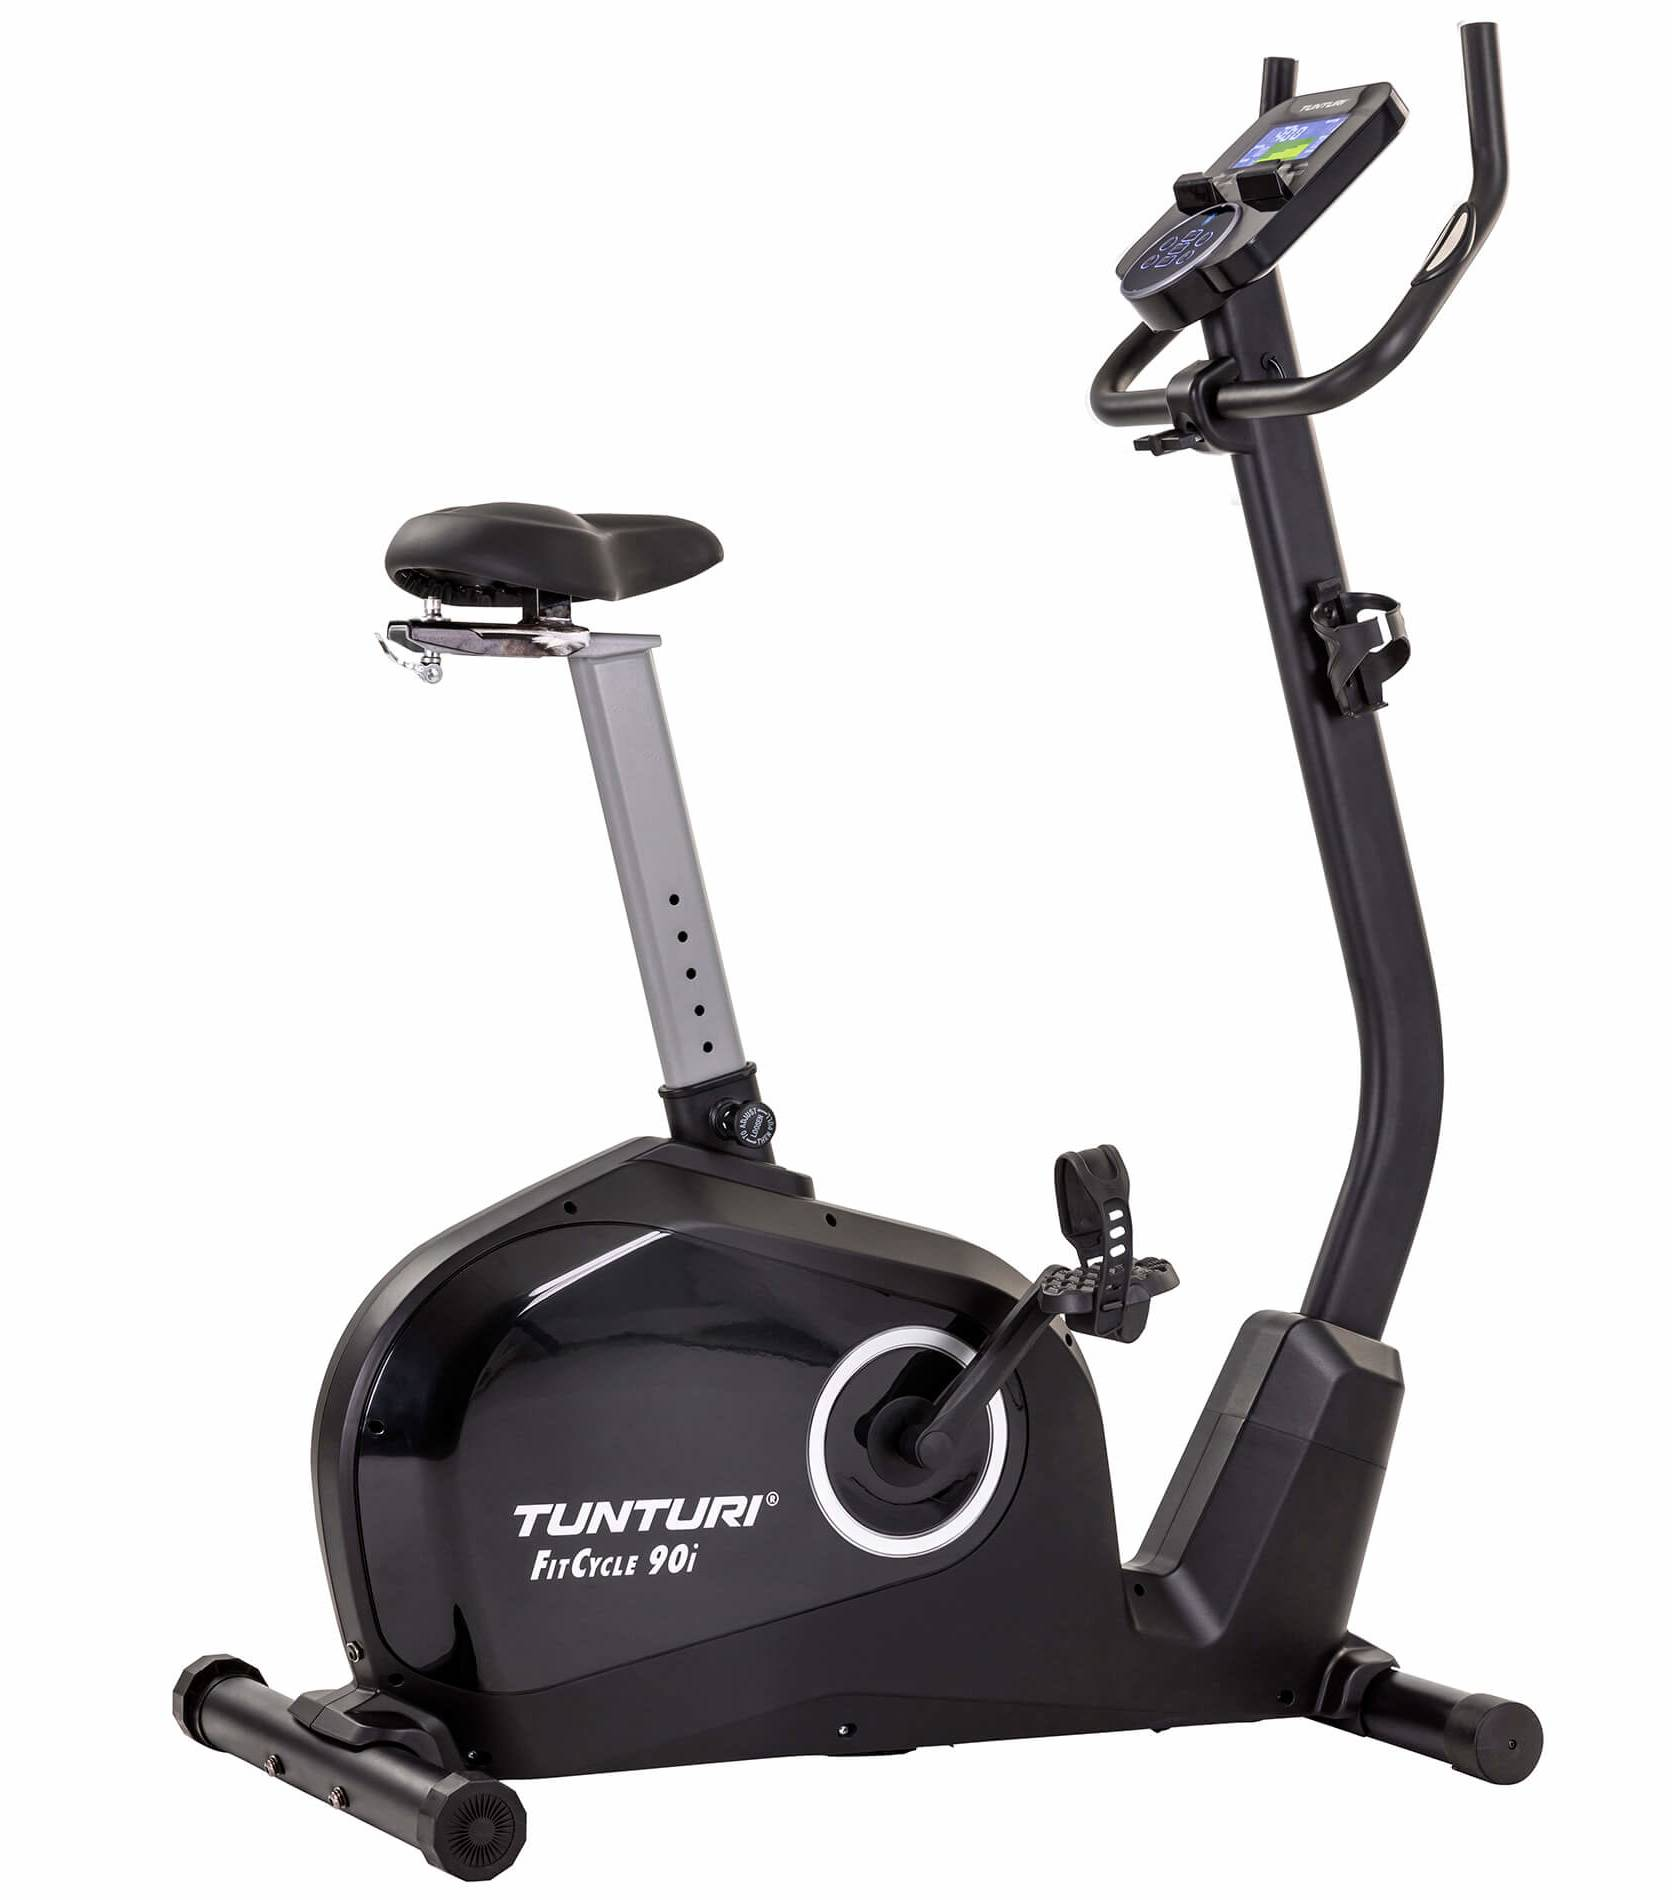 Rotoped TUNTURI Fitcycle 90i